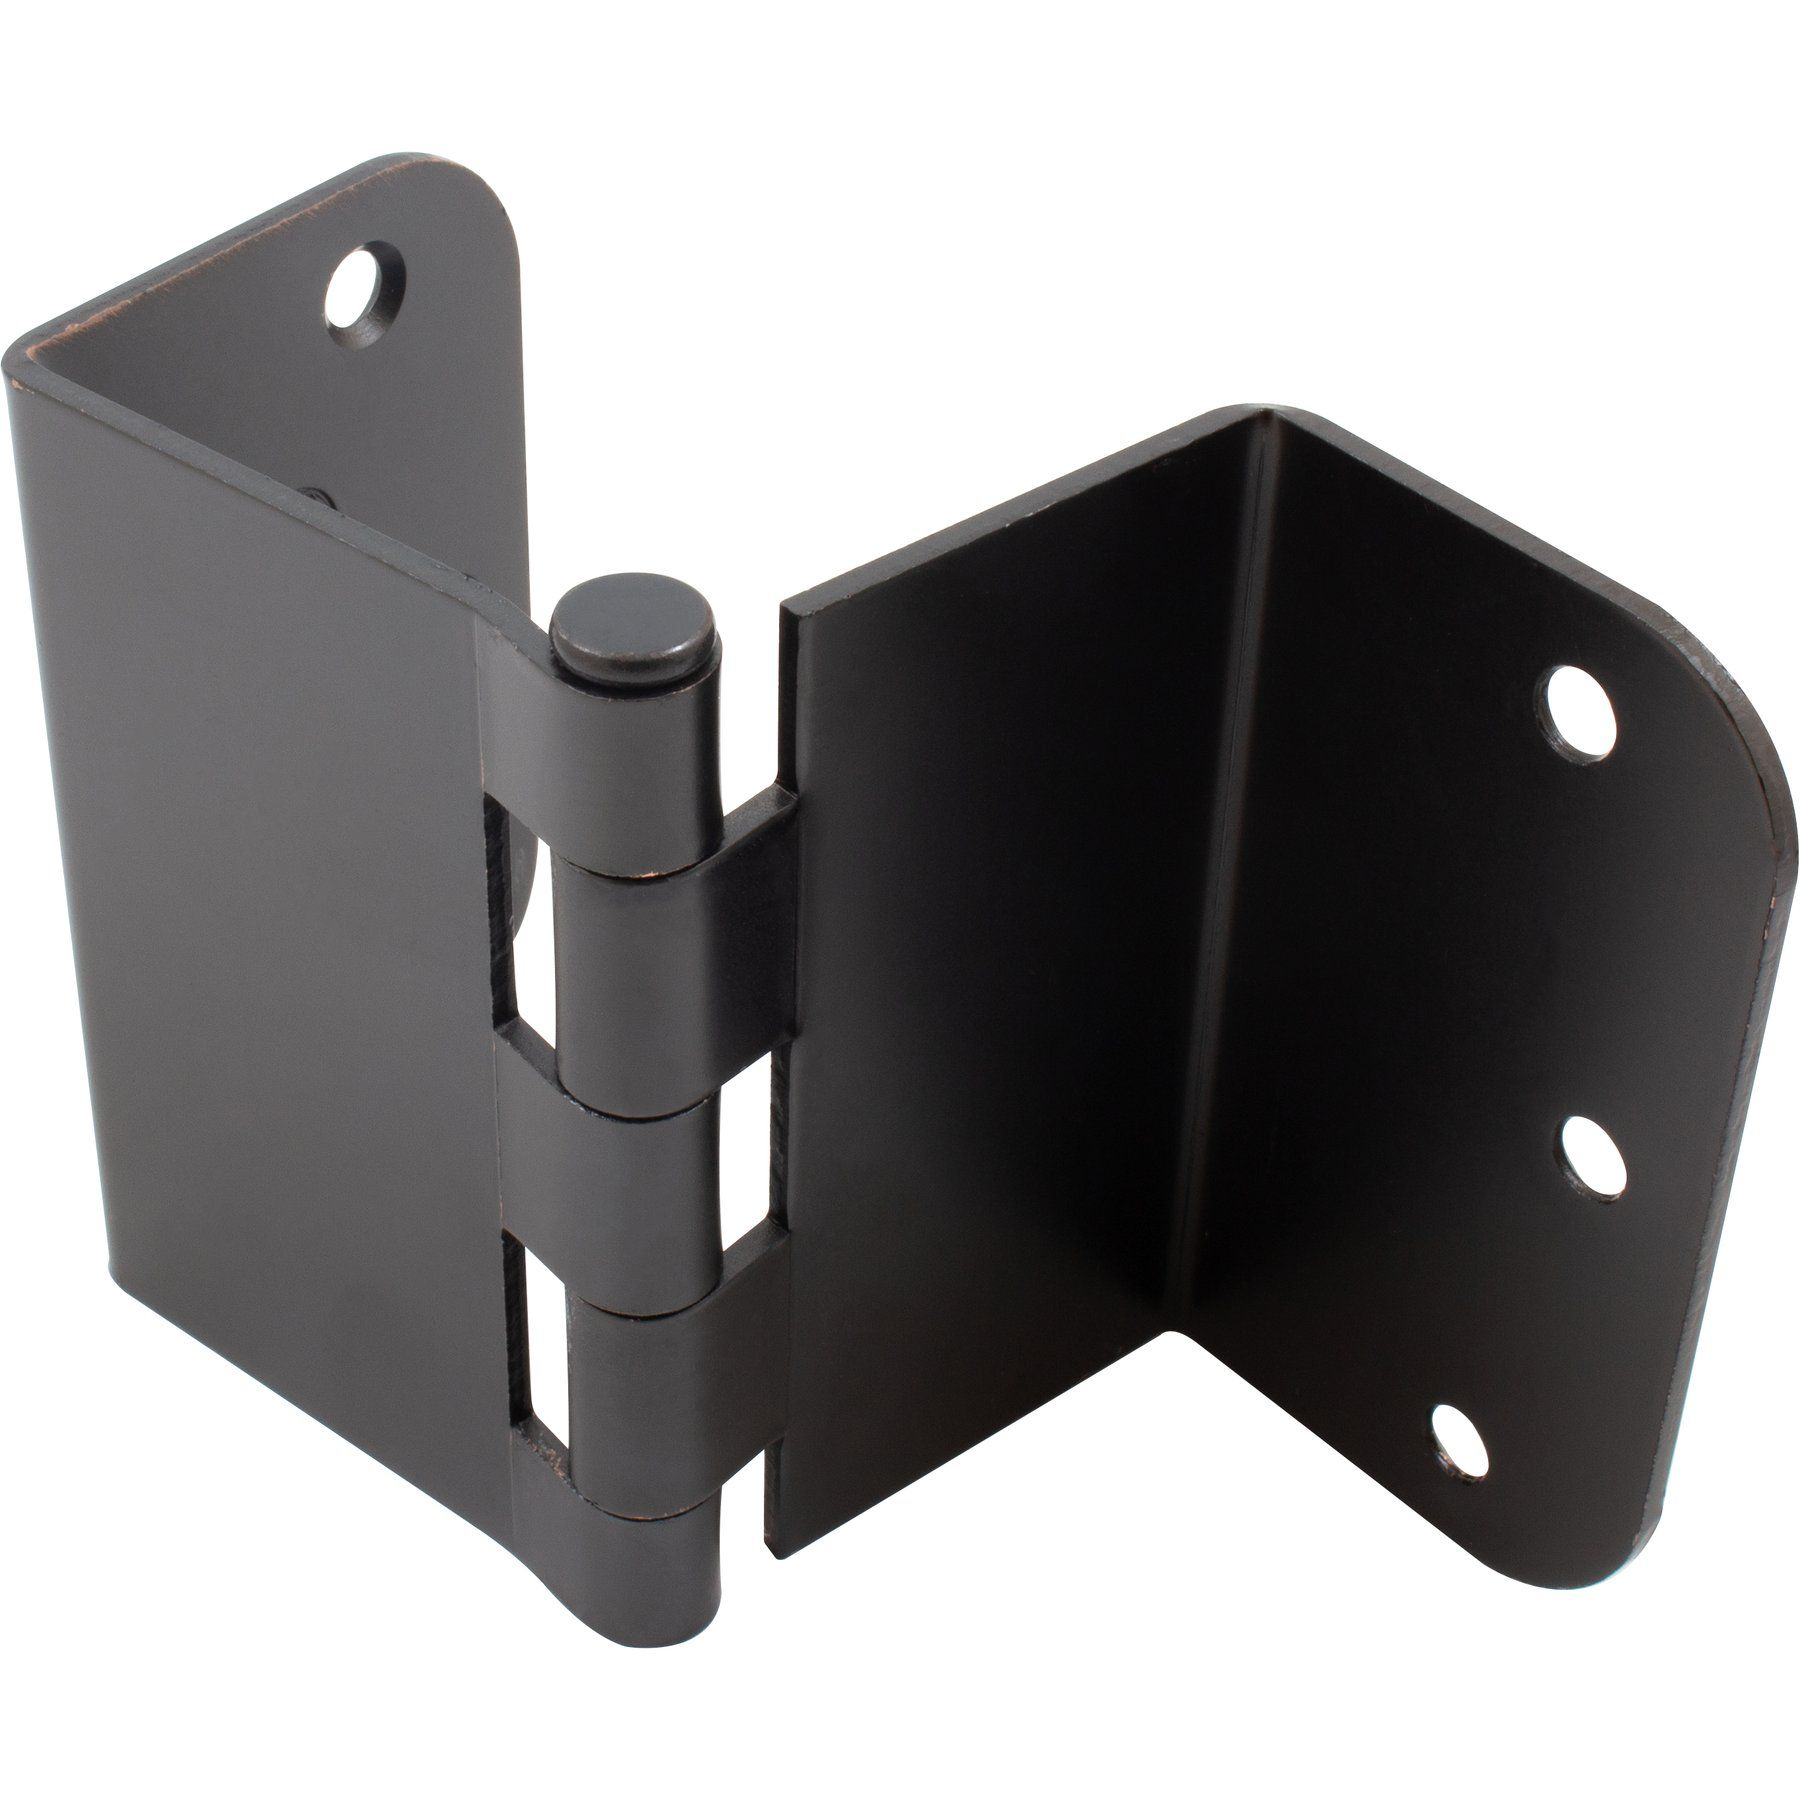 Swing Clear Offset Door Hinge Stone Harbor Hardware Door Hinges Hinges Hidden Door Hinges